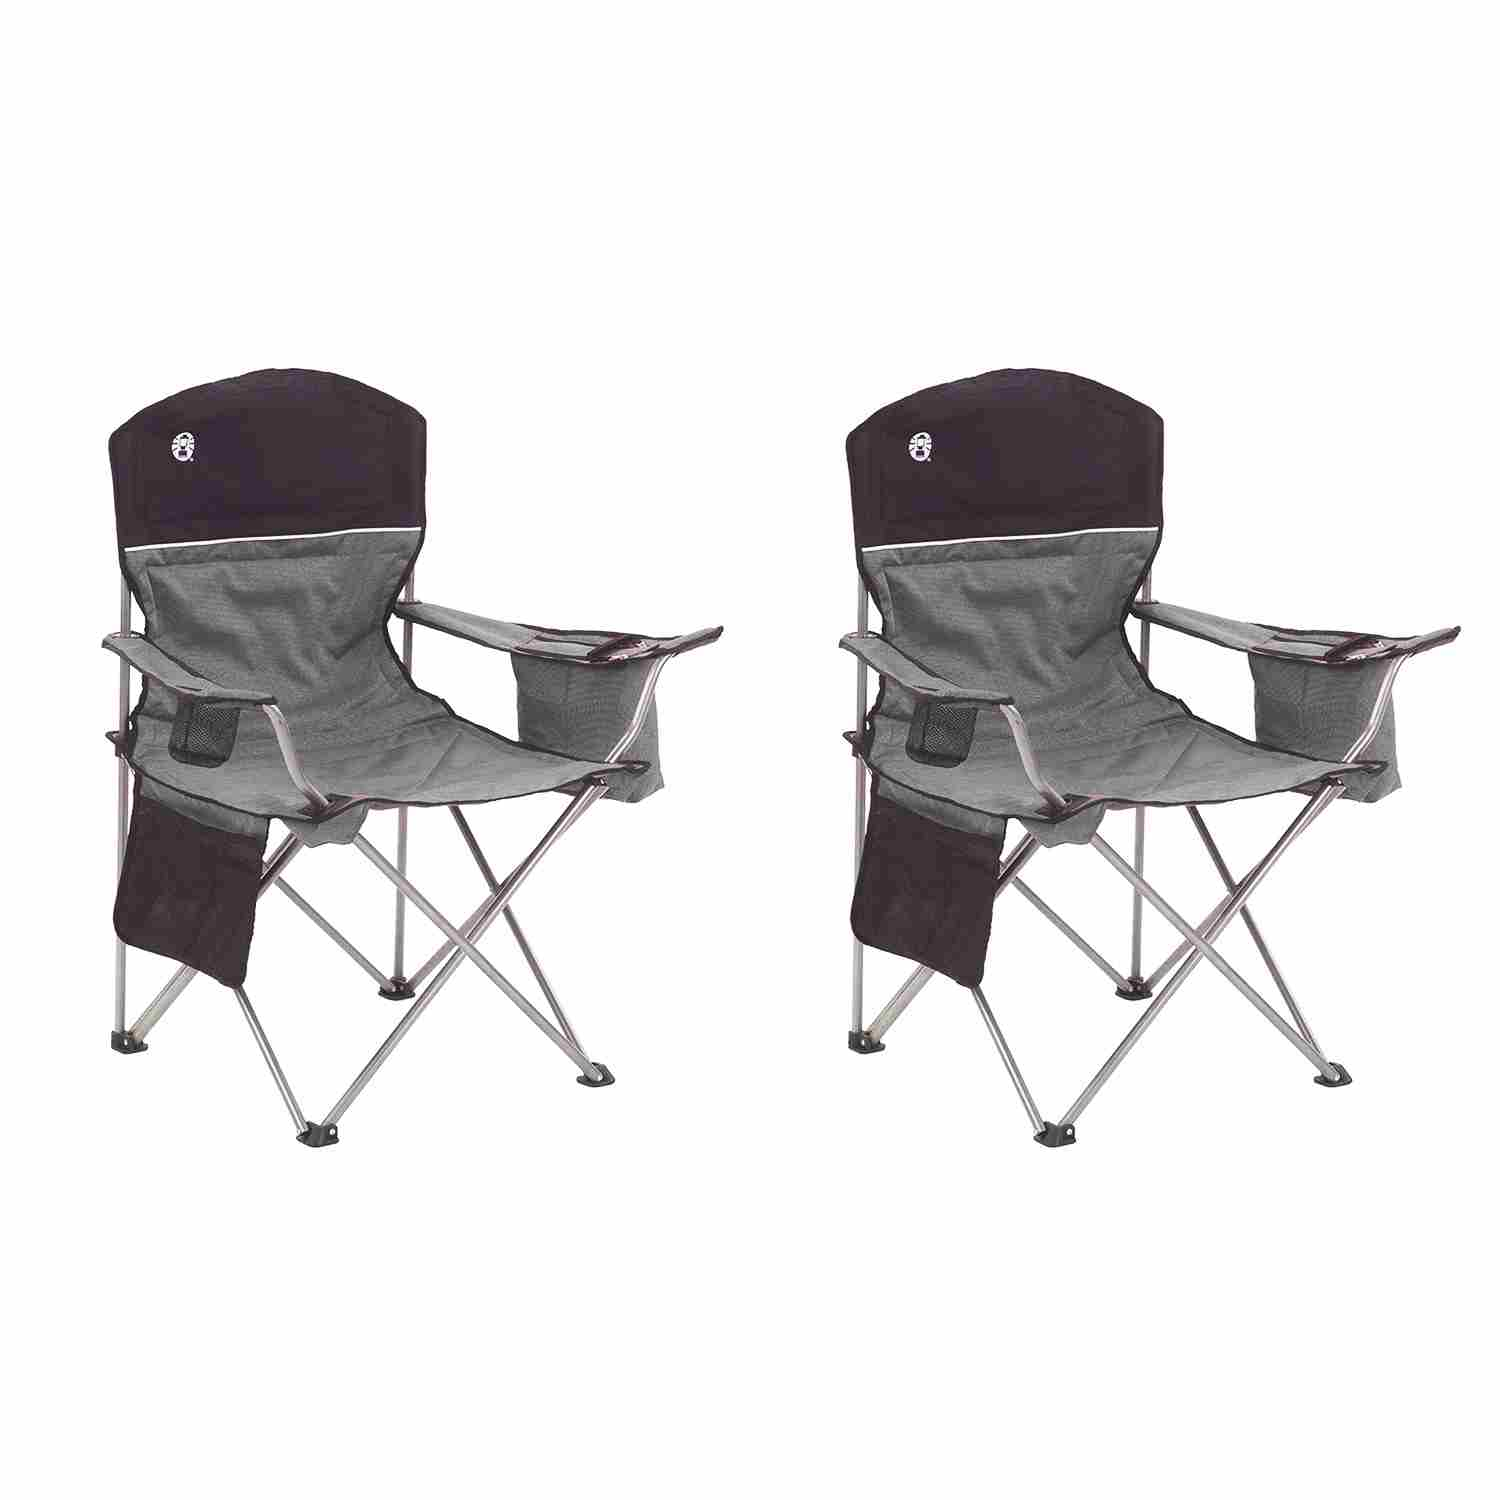 coleman portable deck chair caning seat weaving supplies maccabee camping chairs